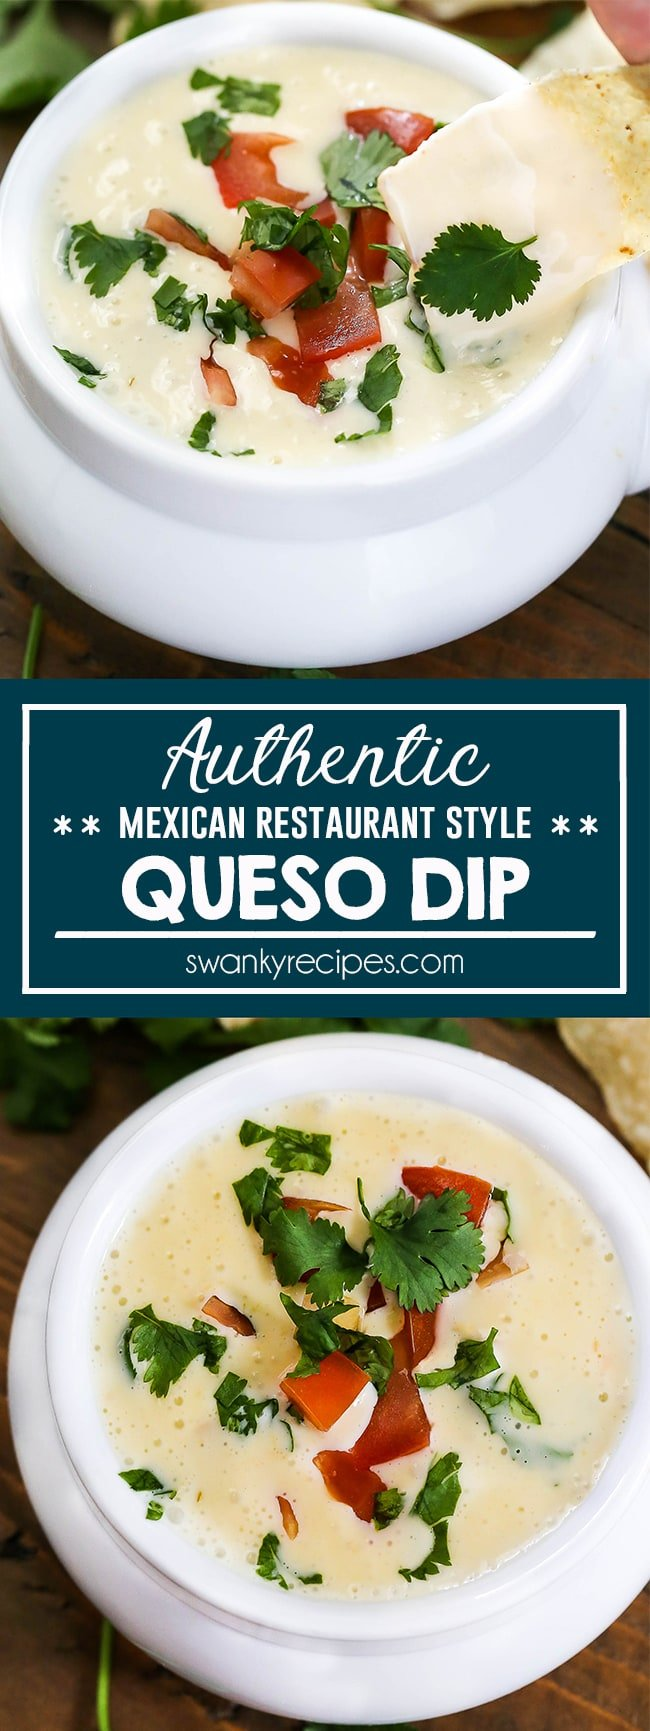 Authentic Queso Cheese Dip - Real Mexican restaurant style Queso Dip with smooth dipping cheese. Melted cheese dip with jalapeno, cilantro, tomatoes. Serve with tortilla chips for a quick authentic Mexican appetizer.